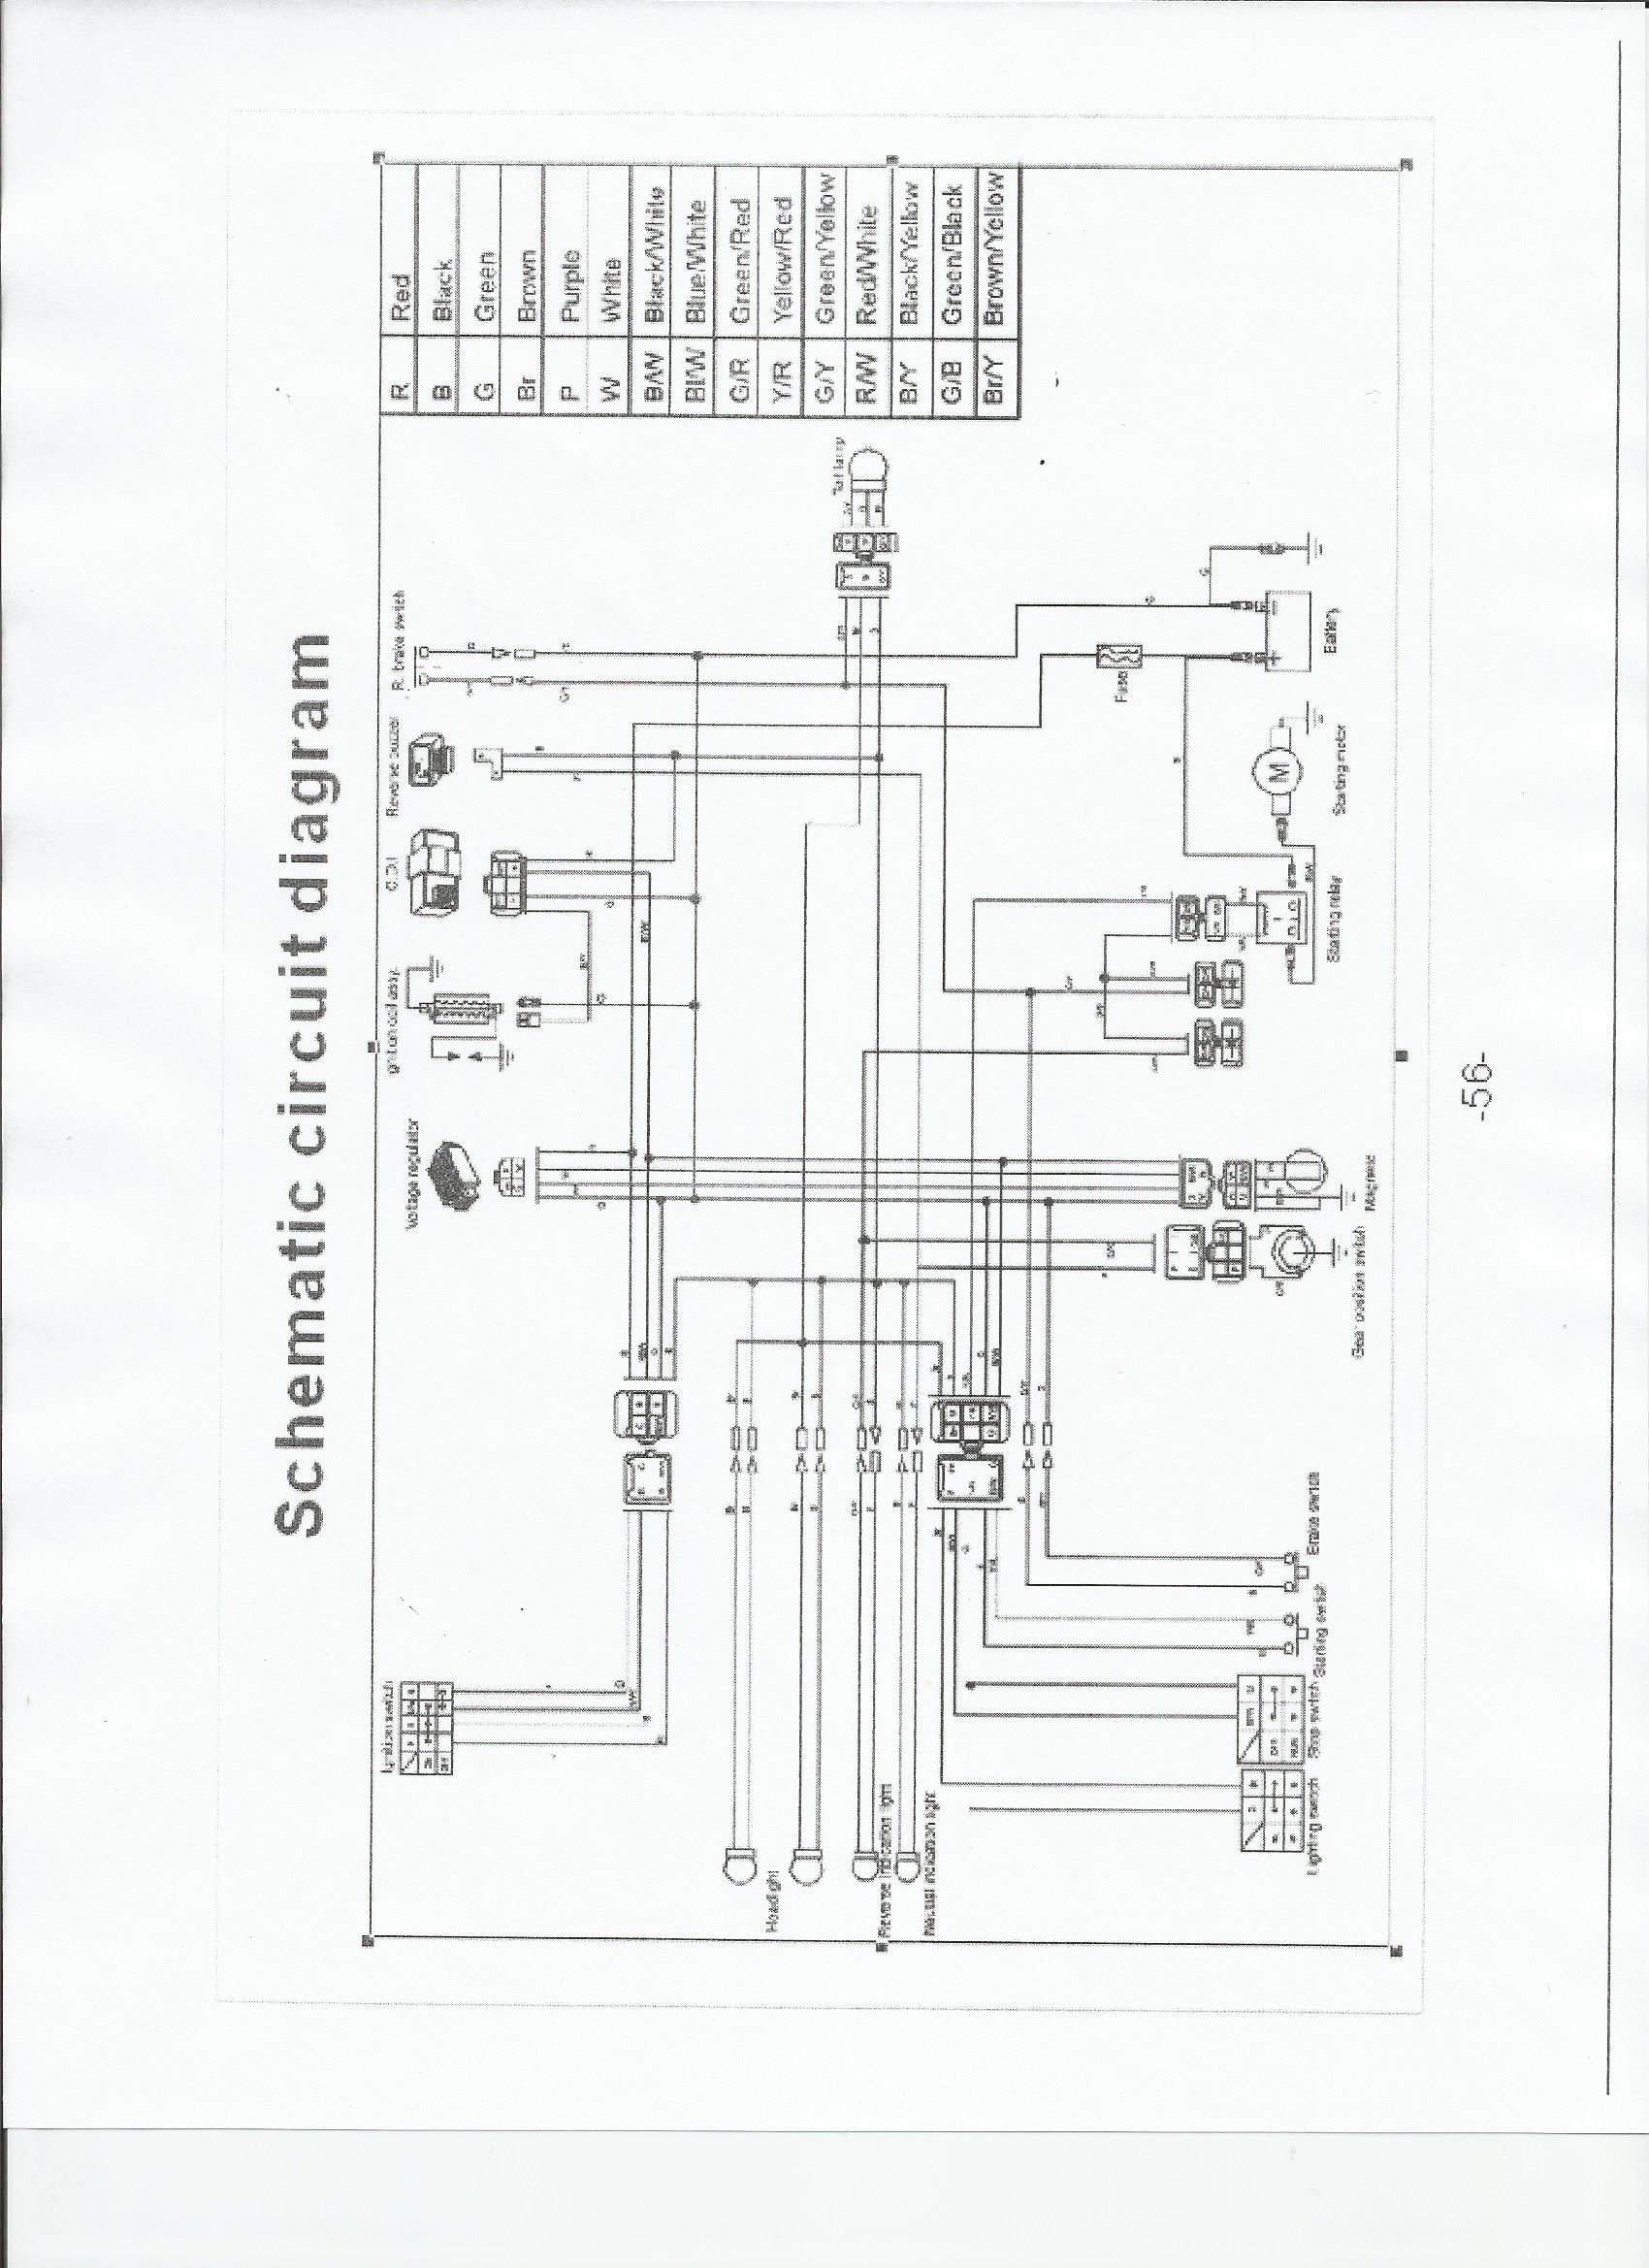 tao tao wiring schematic taotao ata110 b wiring diagram taotao 110cc wiring diagram Chinese 90Cc ATV at eliteediting.co